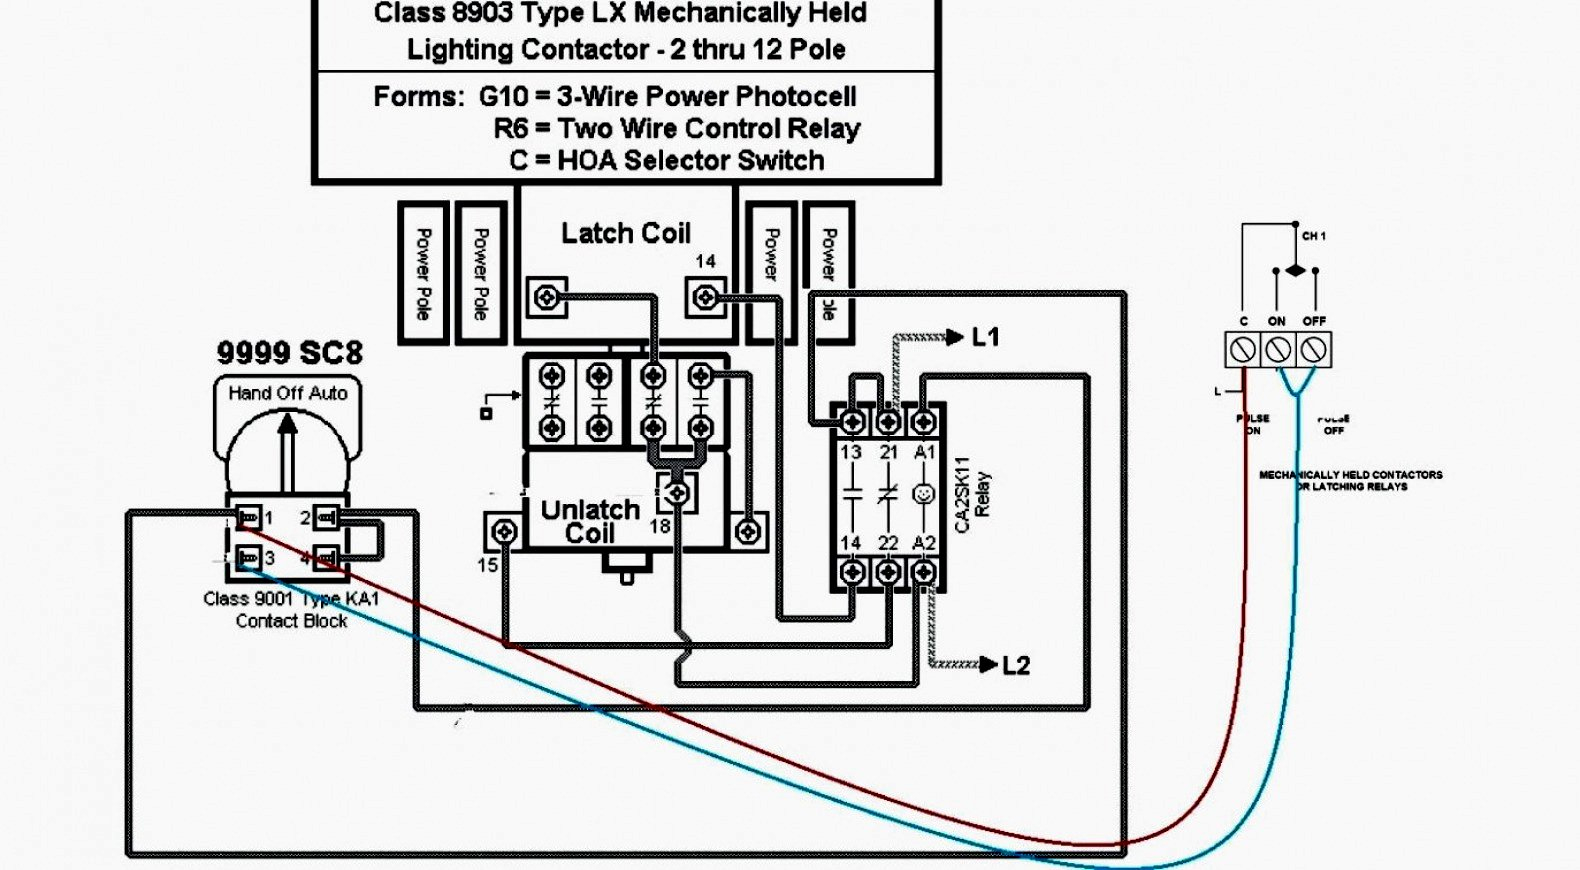 Advance Hps Ballast Wiring Diagram | Wiring Diagram - Mh Ballast Wiring Diagram